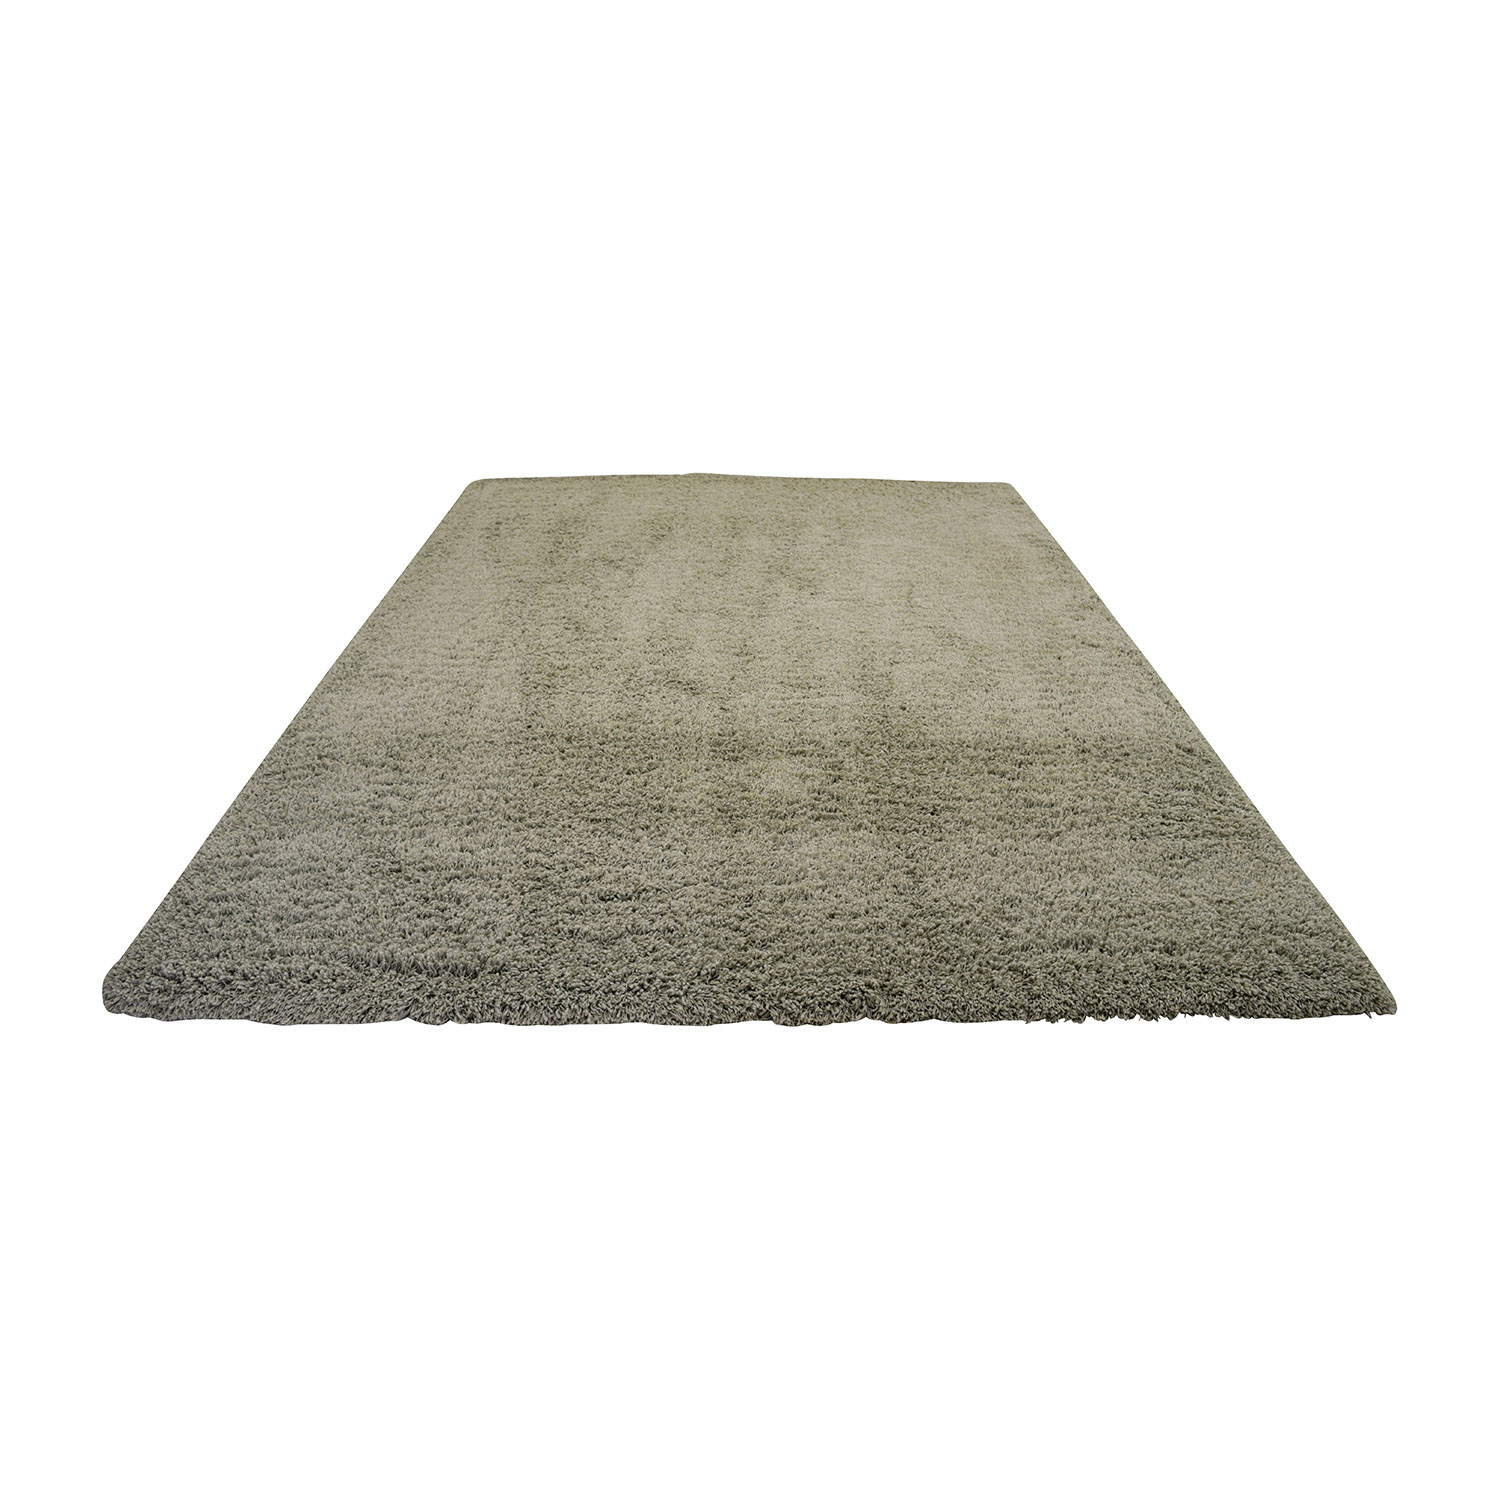 Ethan Allen Grey Rug / Decor